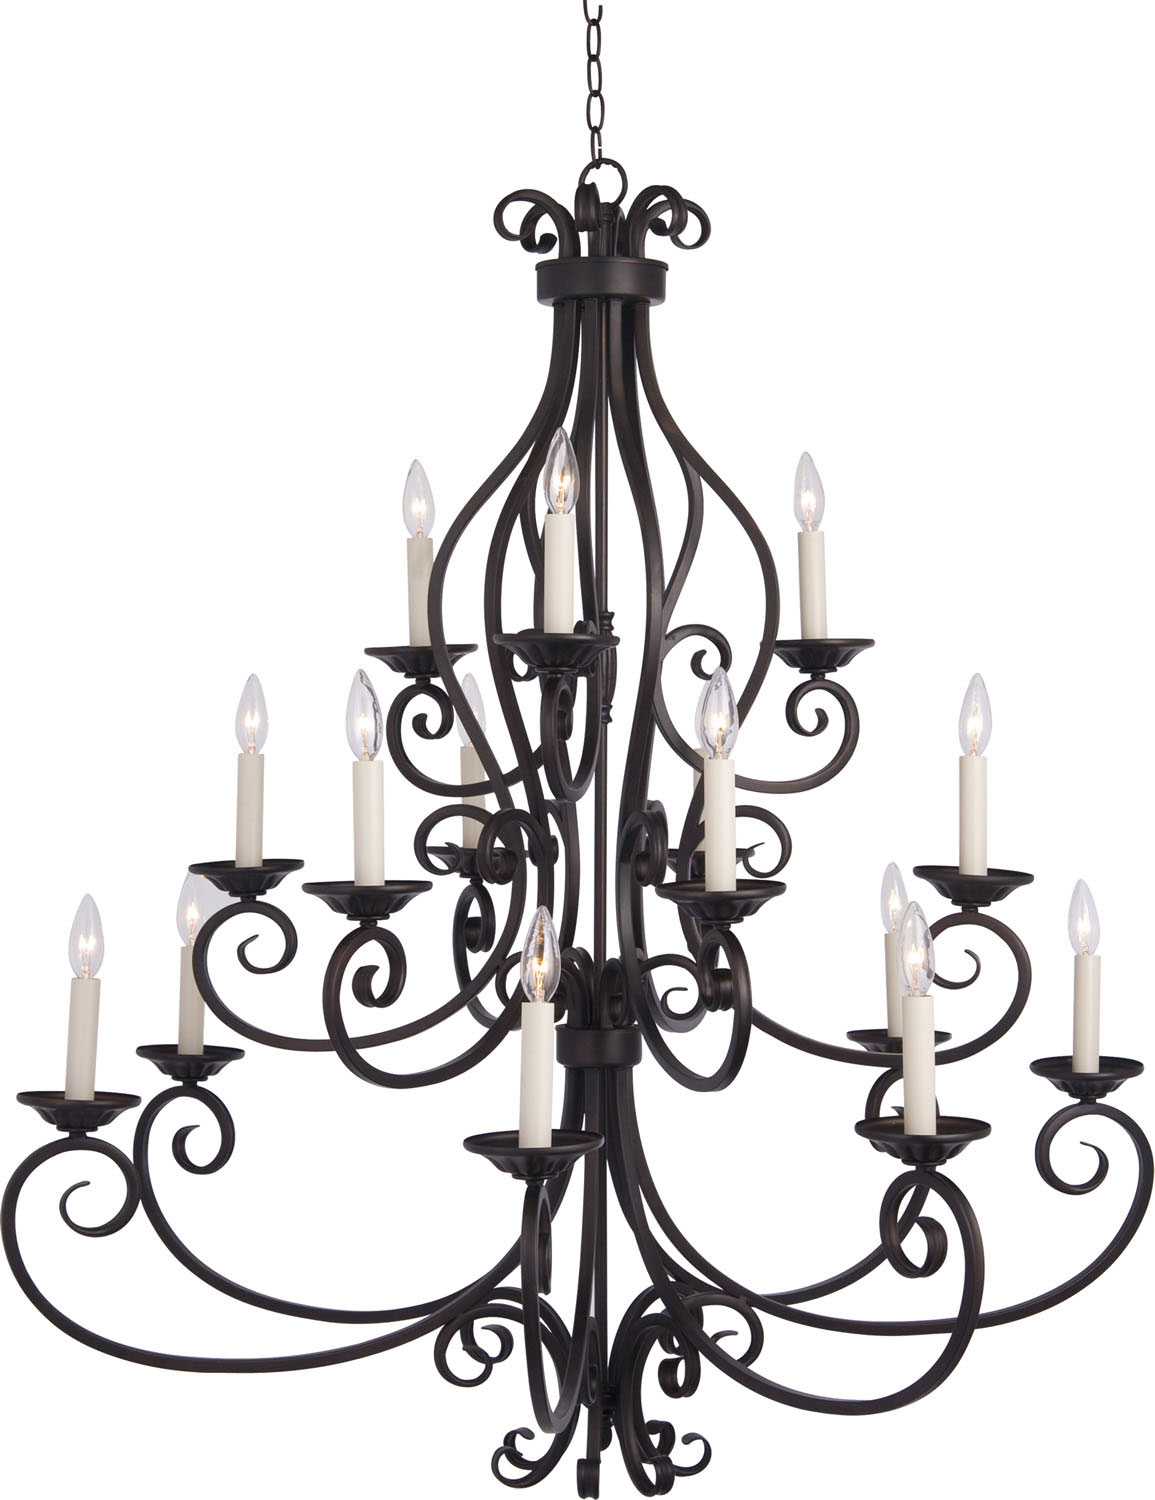 15 Light Chandelier from the Manor collection by Maxim 12219OI